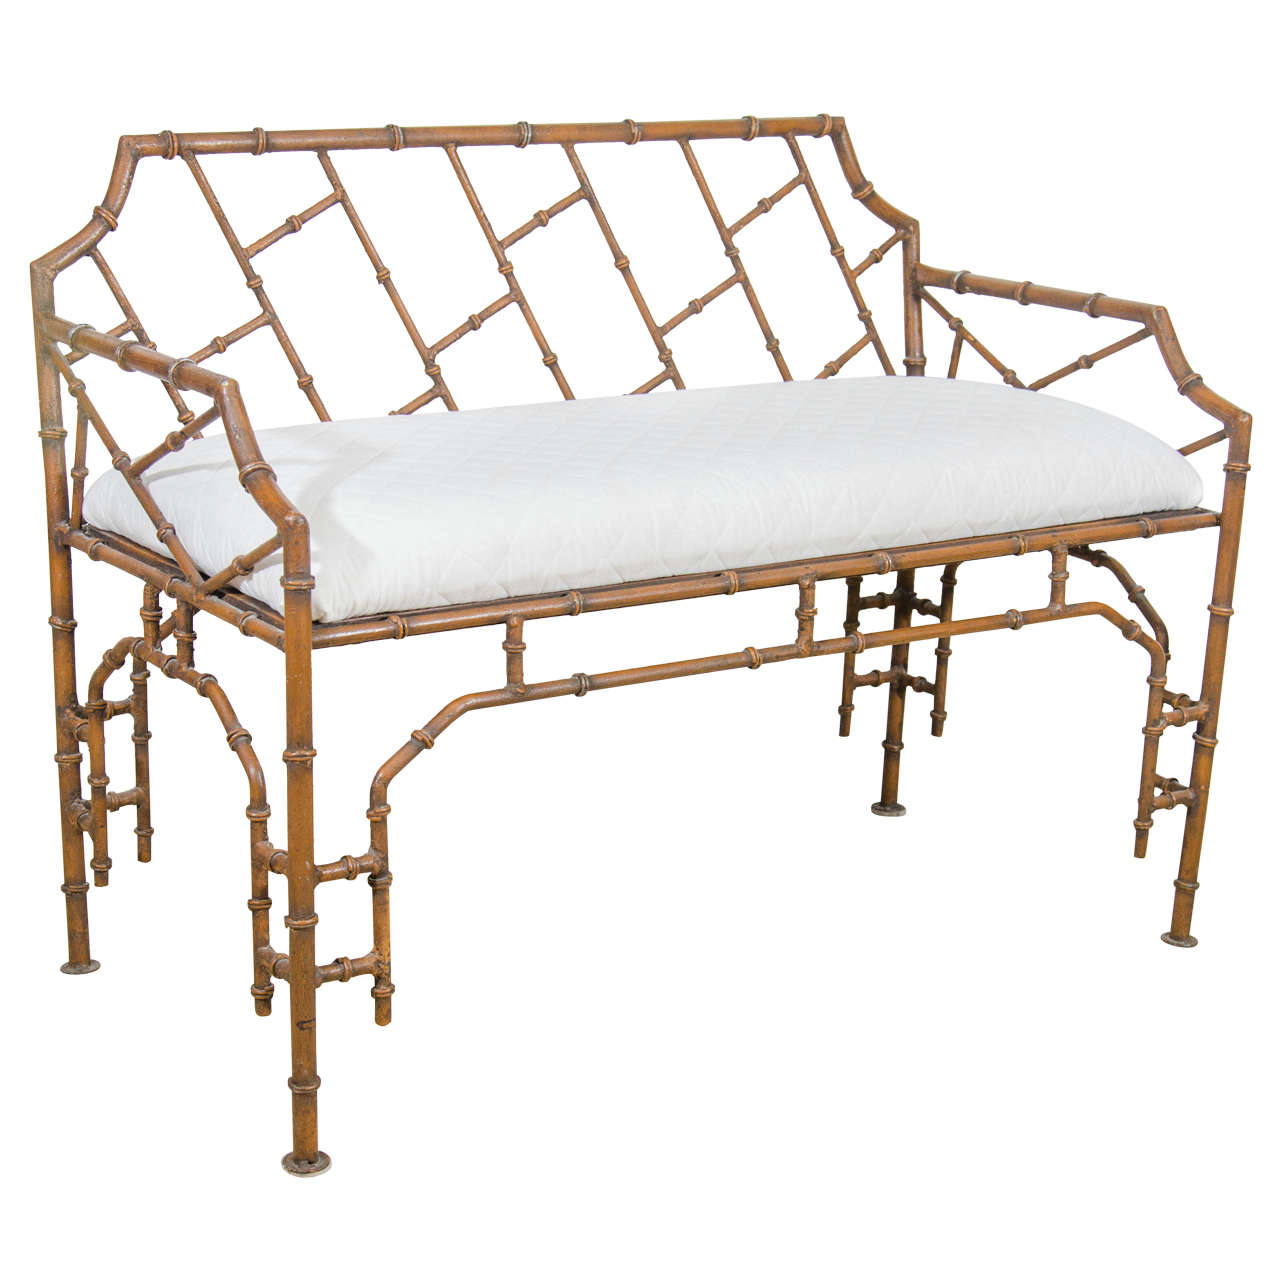 Midcentury Iron Faux Bamboo Bench At 1stdibs